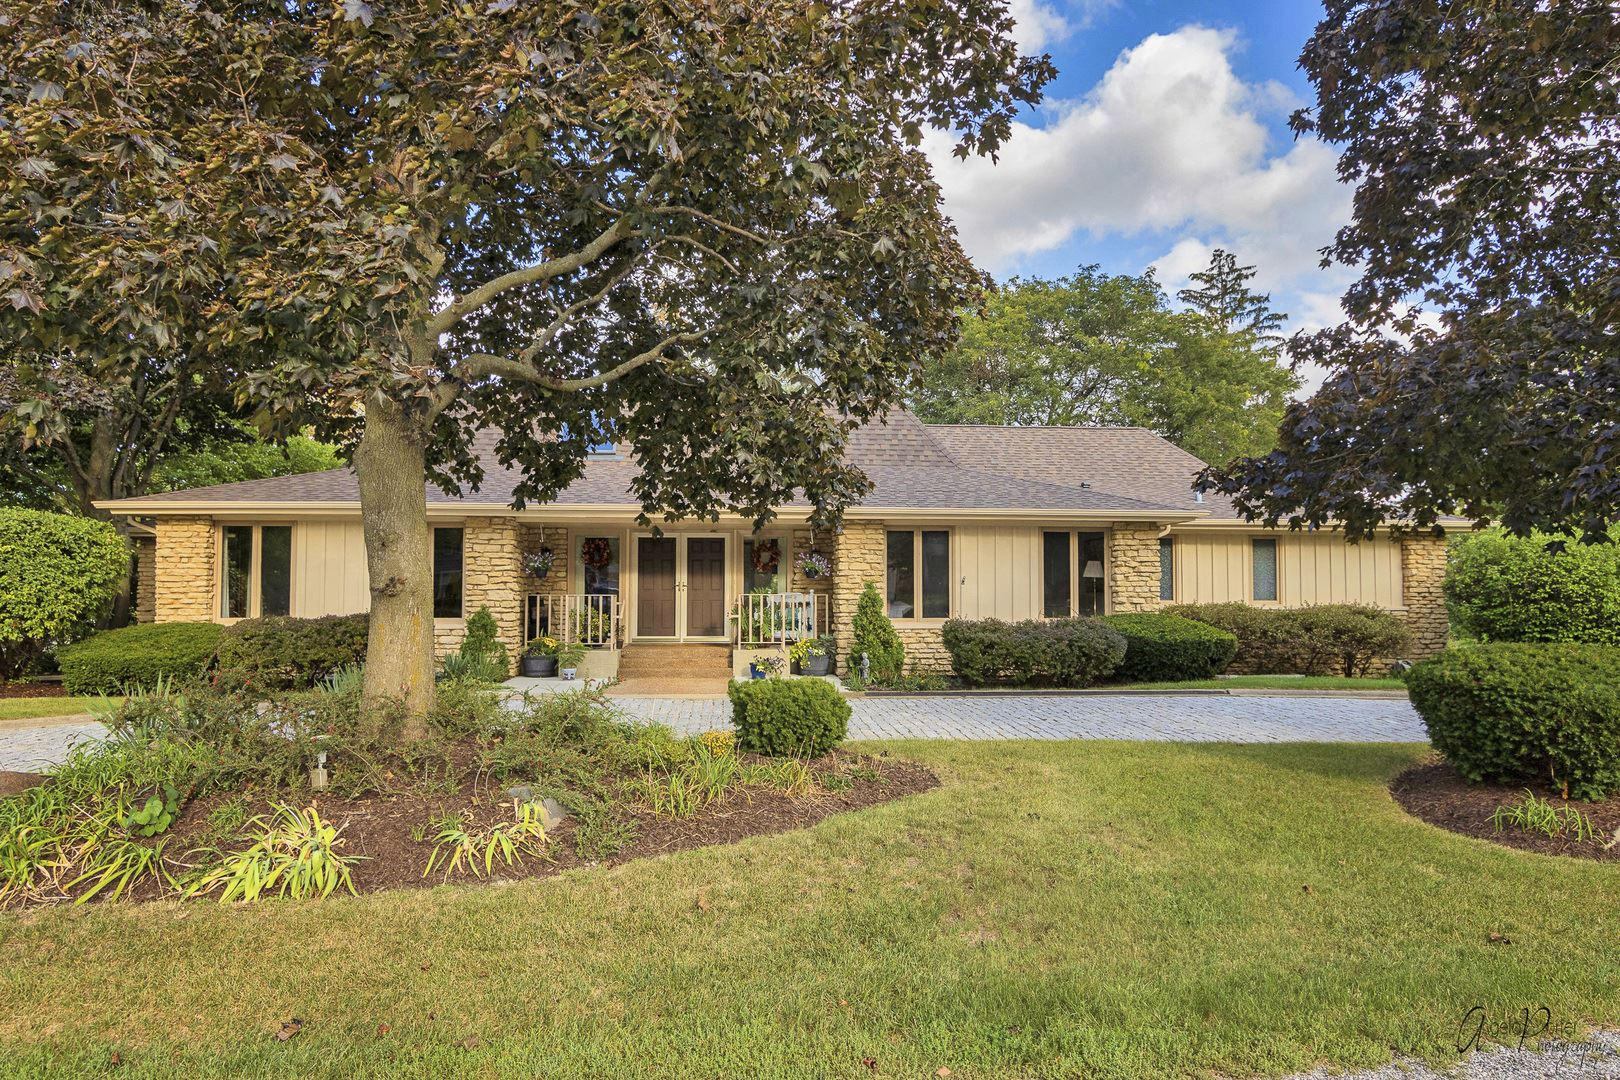 509 N Maple Street, Prospect Heights, IL 60070 - #: 11233400